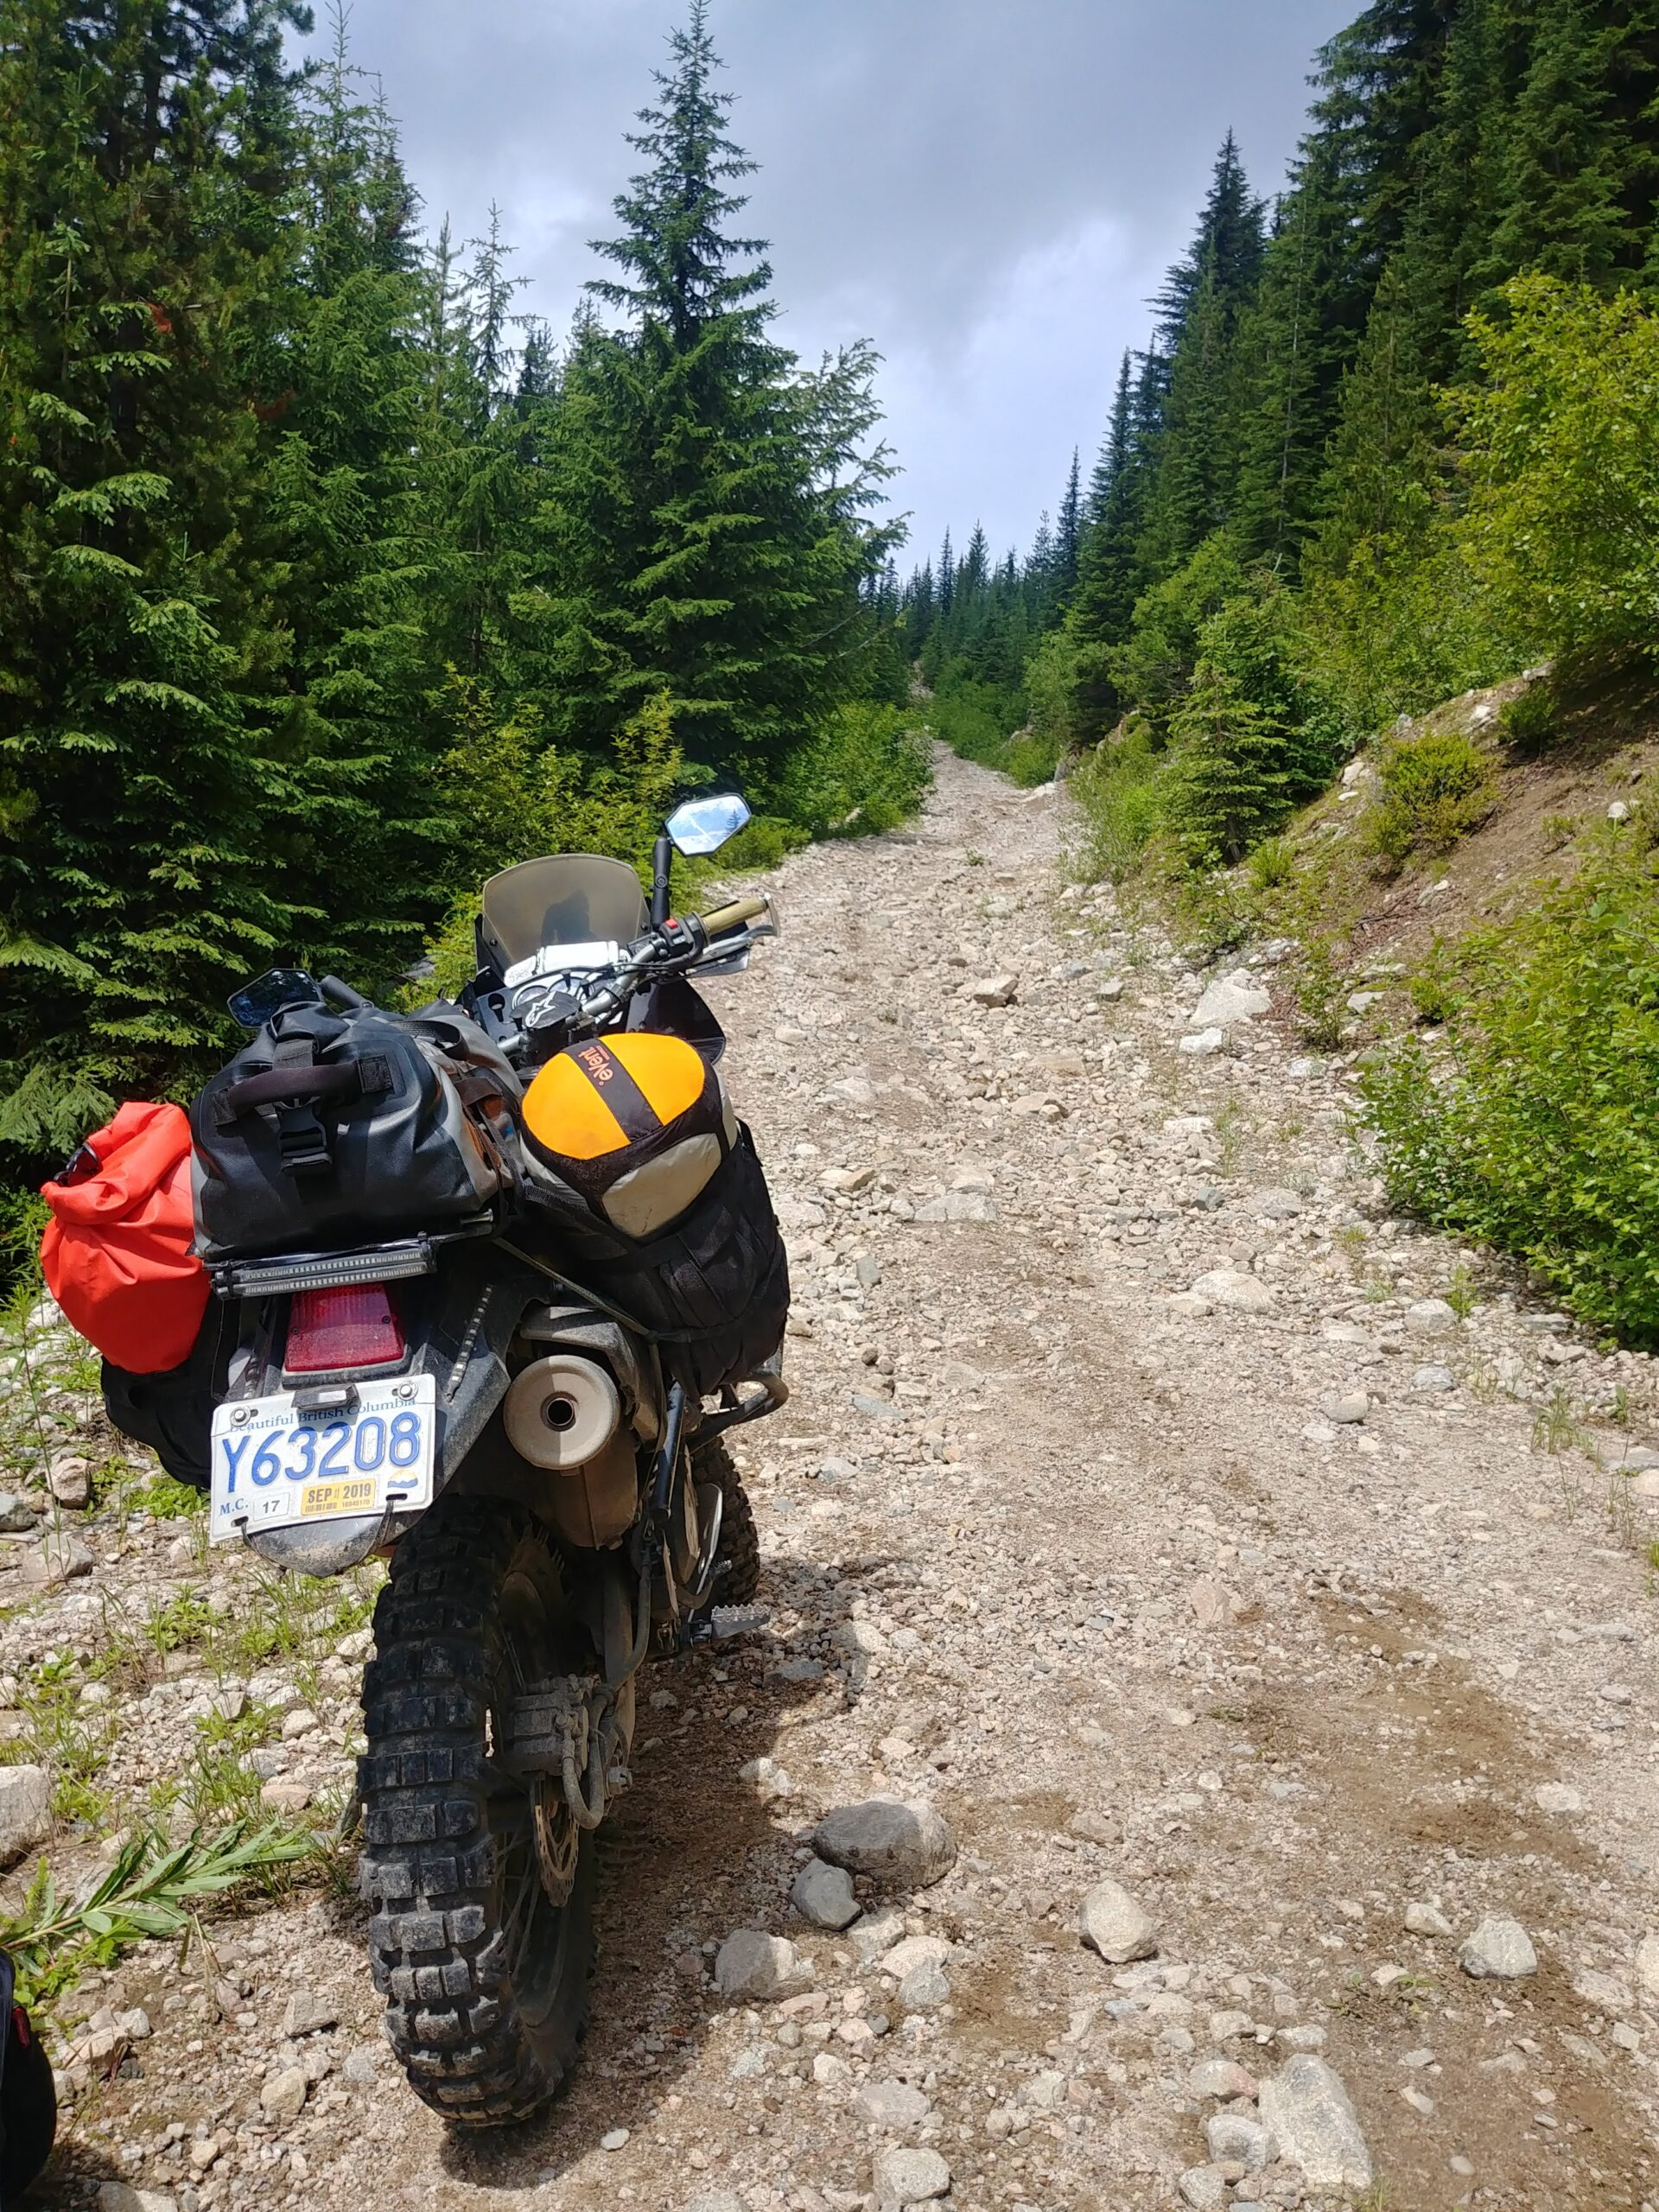 rocky track along canadian border patrol route